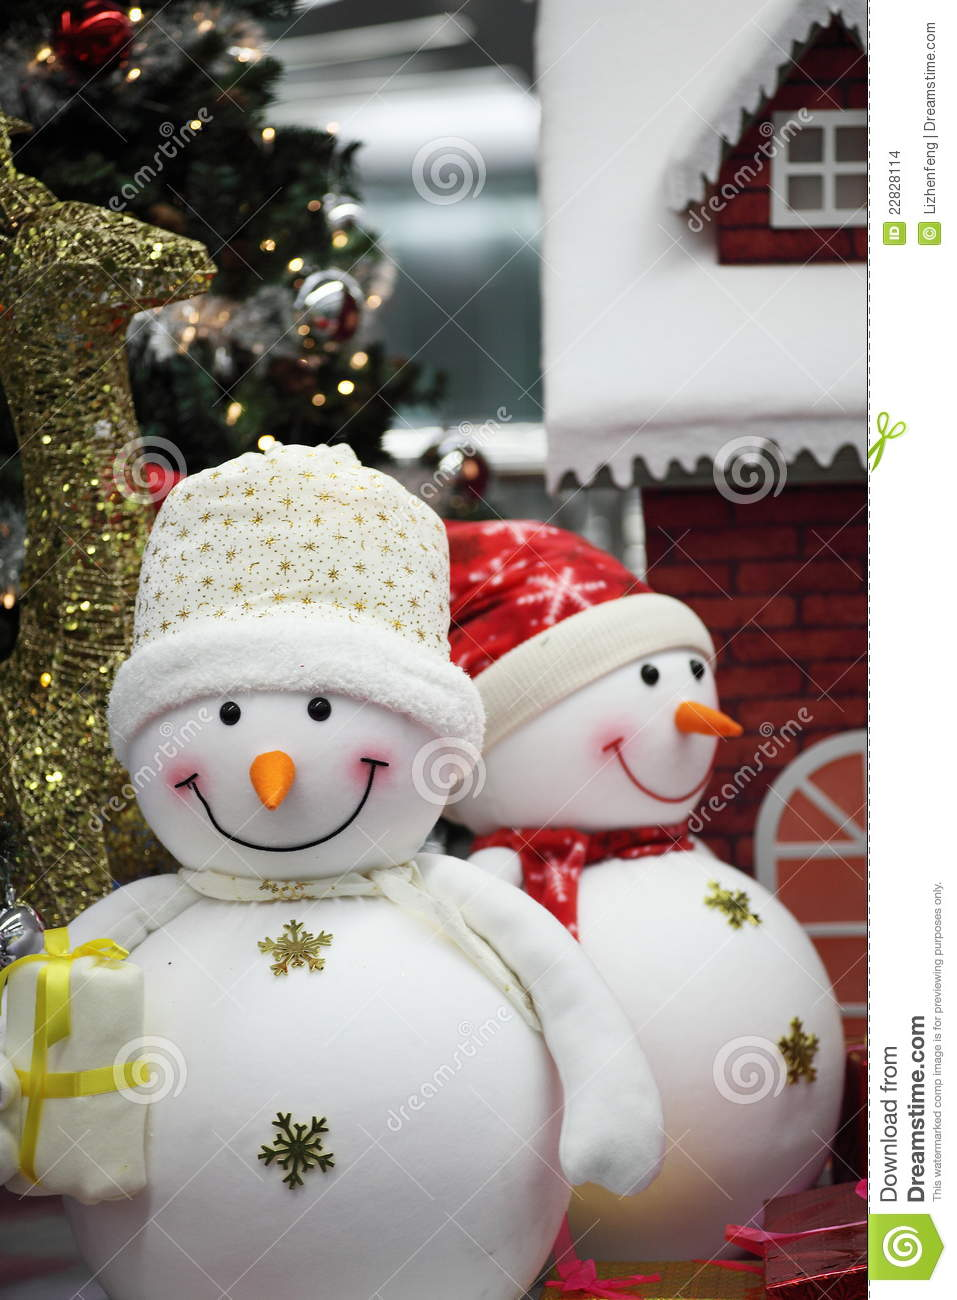 Snowman For Christmas Decoration Stock Images - Image: 22828114